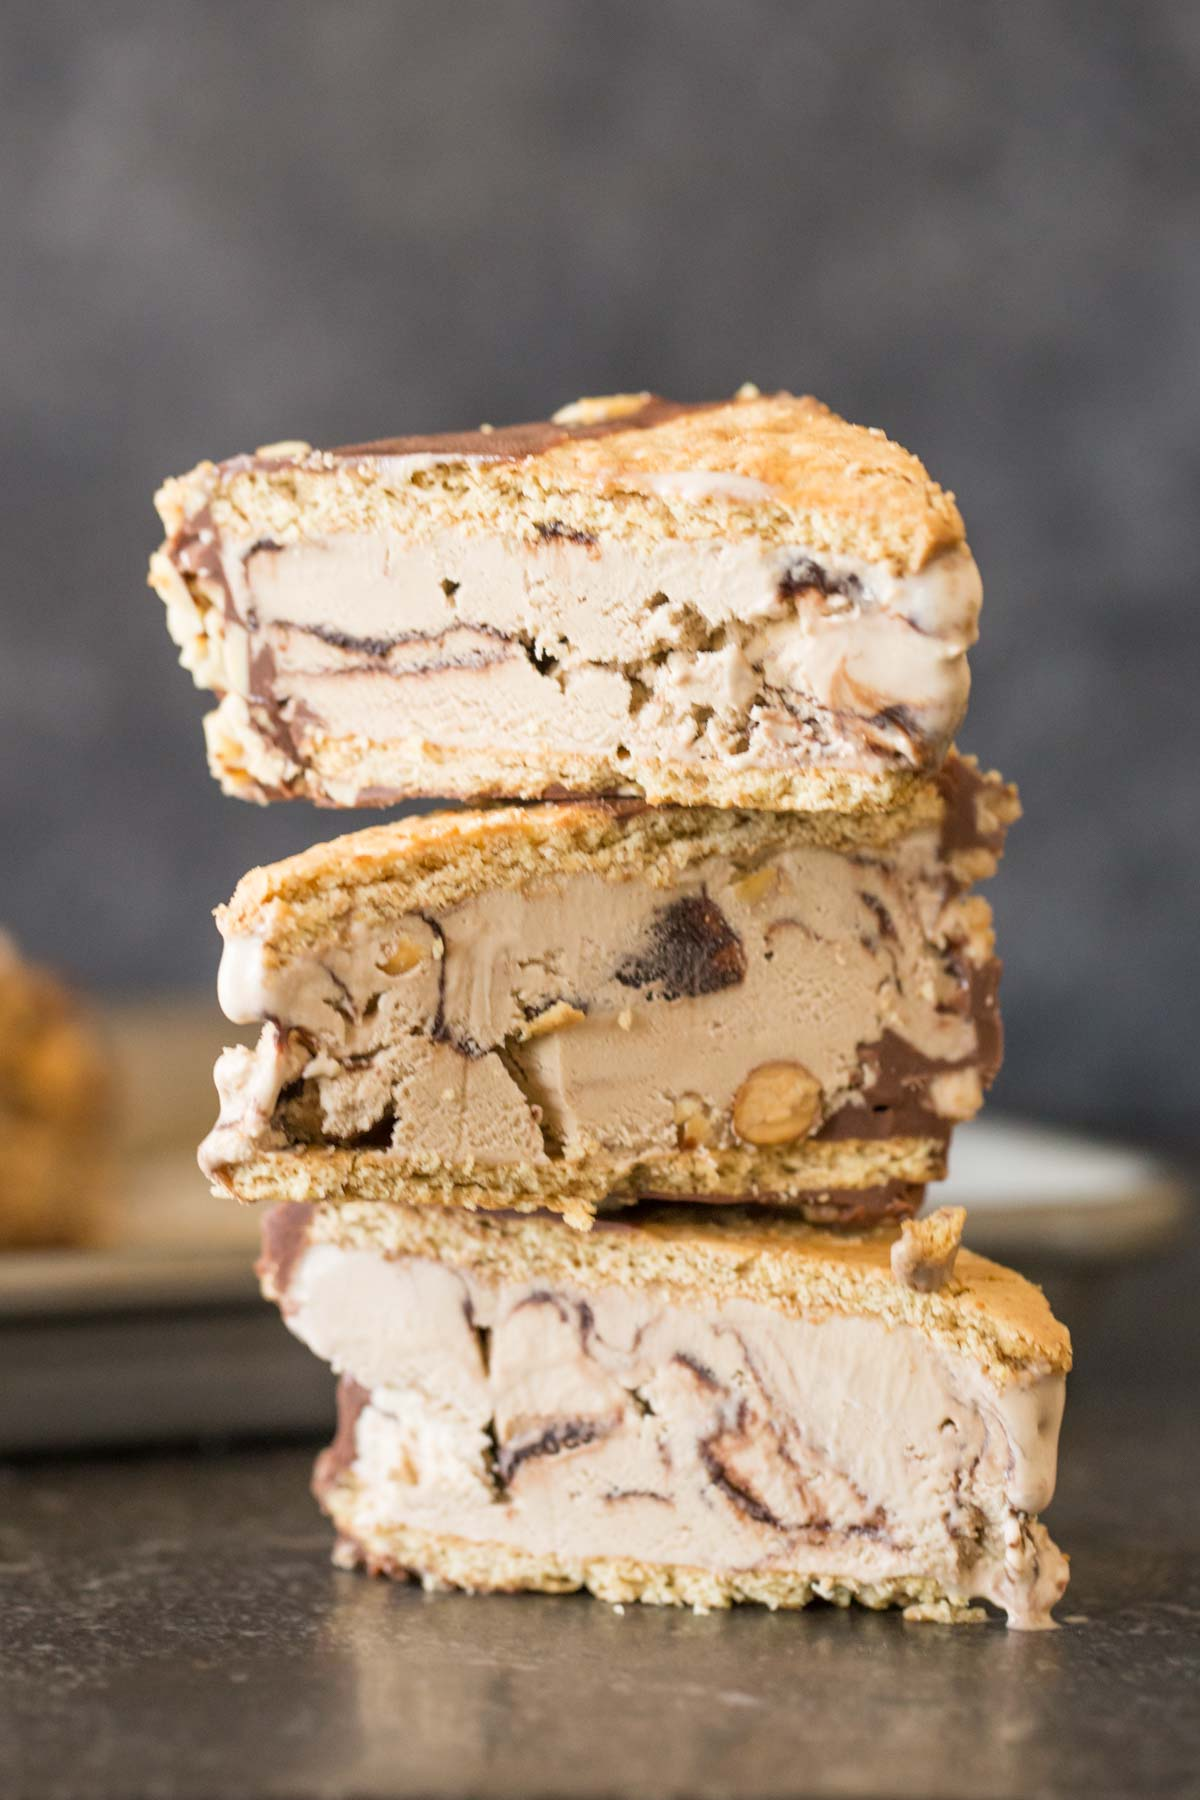 A stack of three Graham Cracker Ice Cream Sandwiches cut in half.